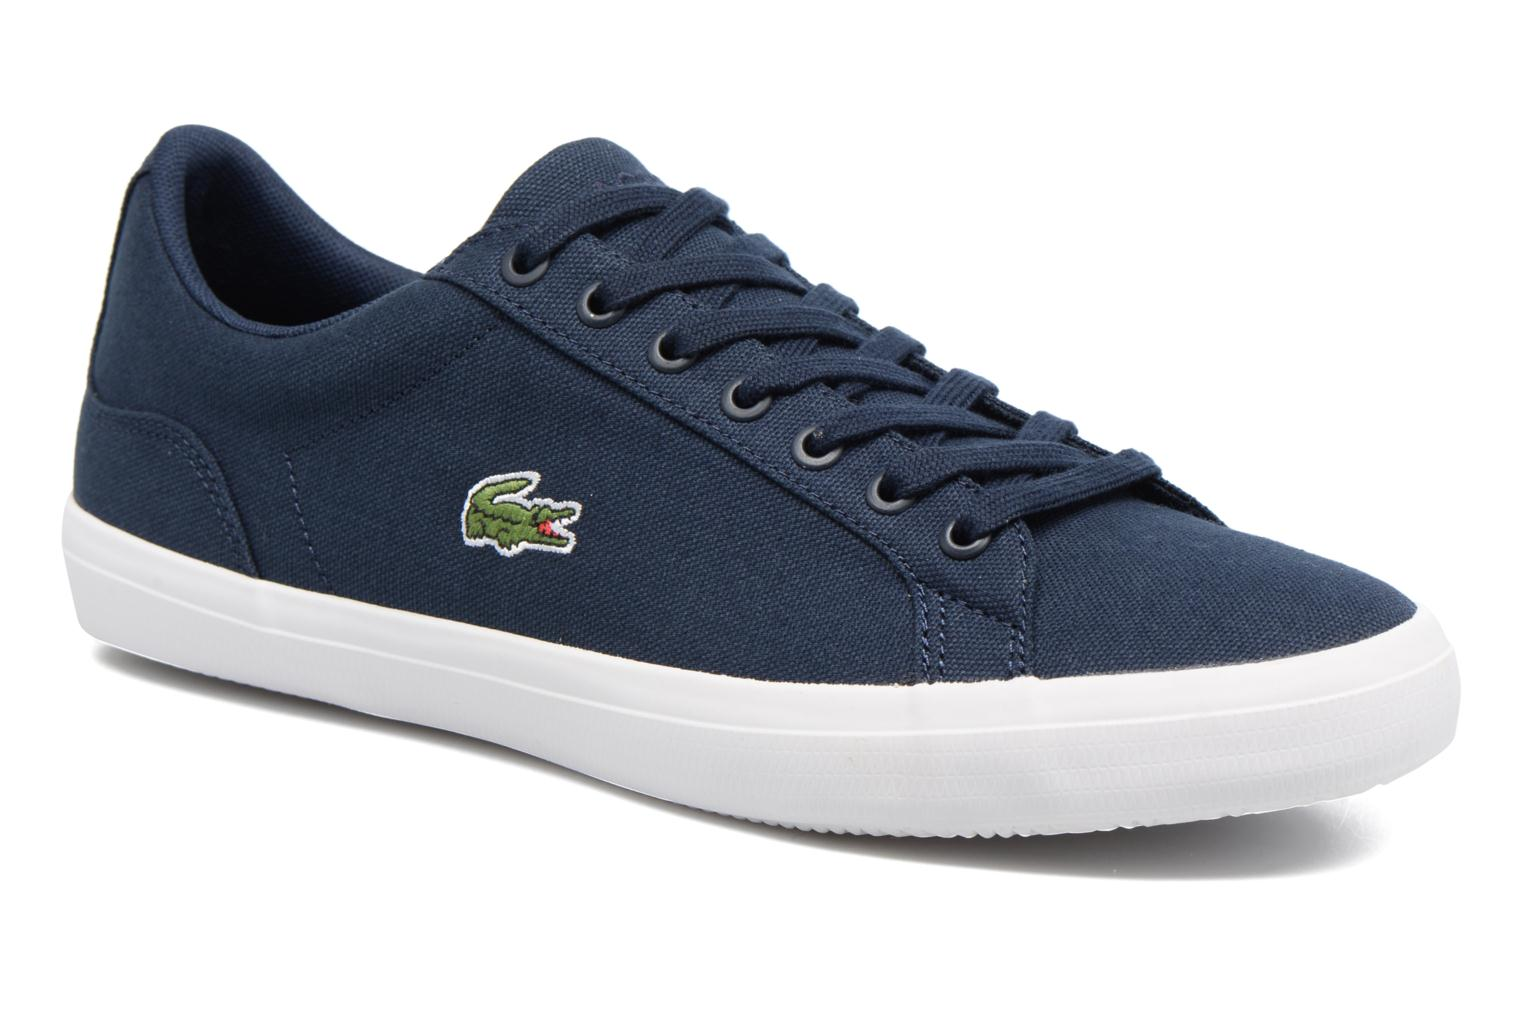 Marques Chaussure homme Lacoste homme Lerond BL 2 Navy